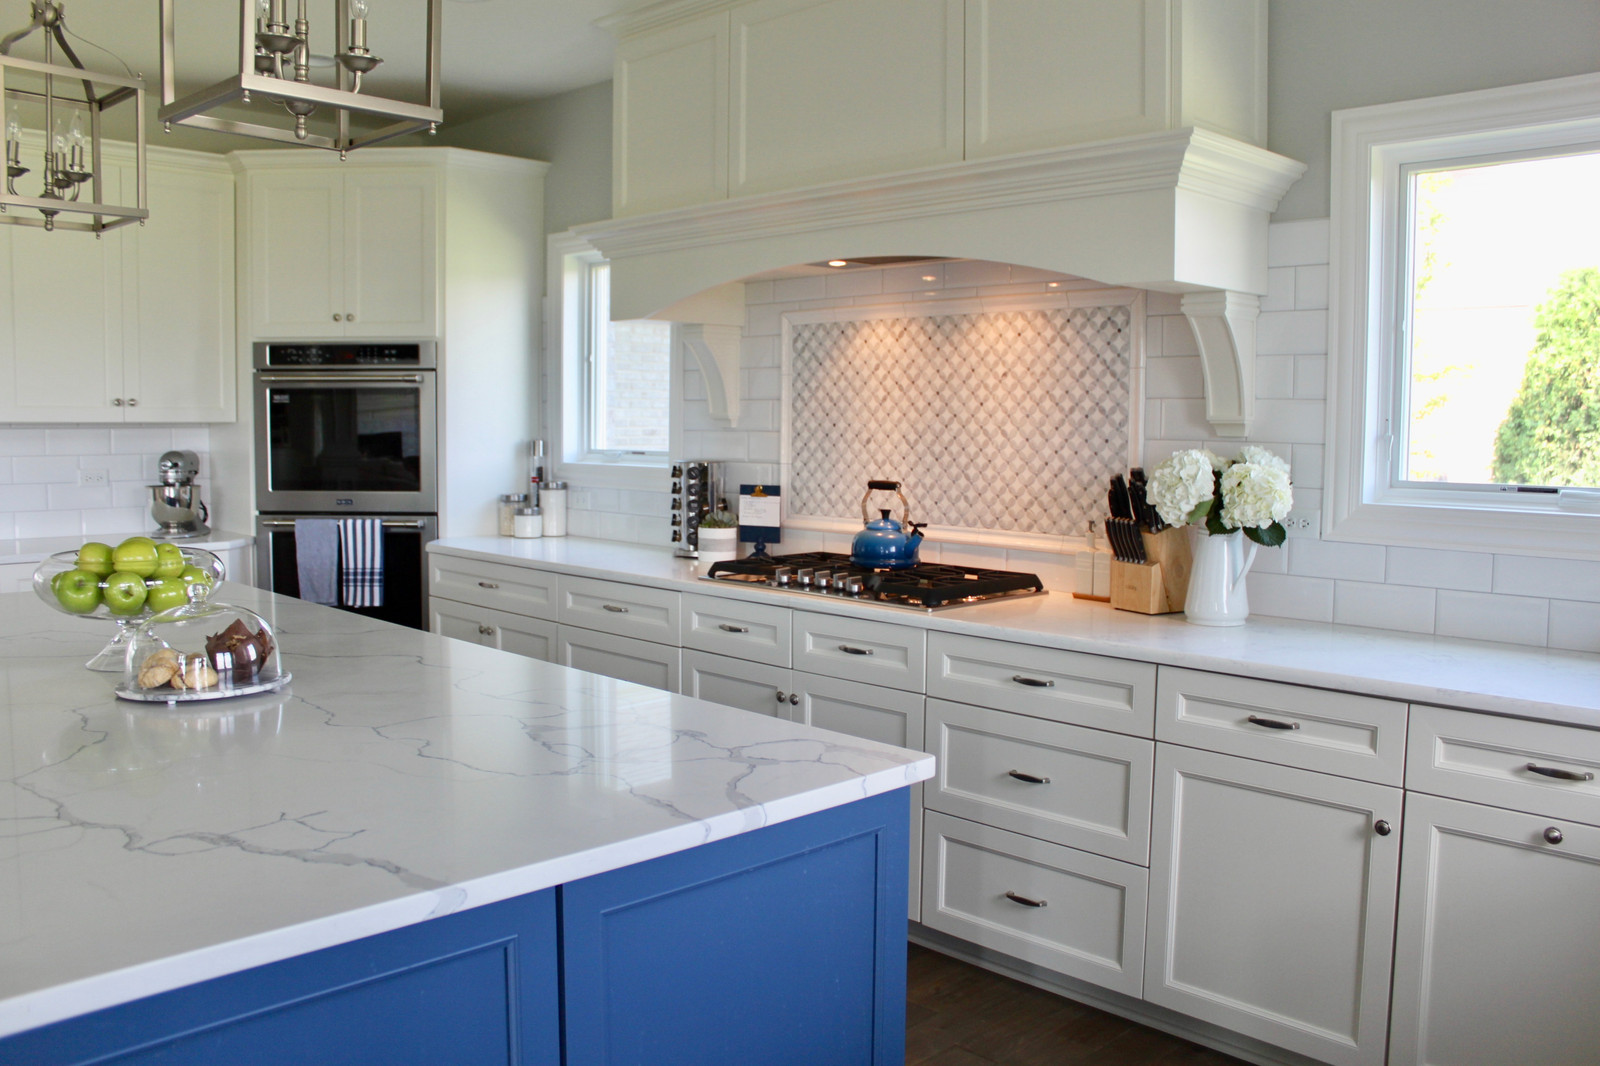 Calcutta Vincenza 3cm Q Quartz Kitchen Perimeter, Statuary Classique Q  Quartz Island Countertop with Half Bullnose Edge Profile.